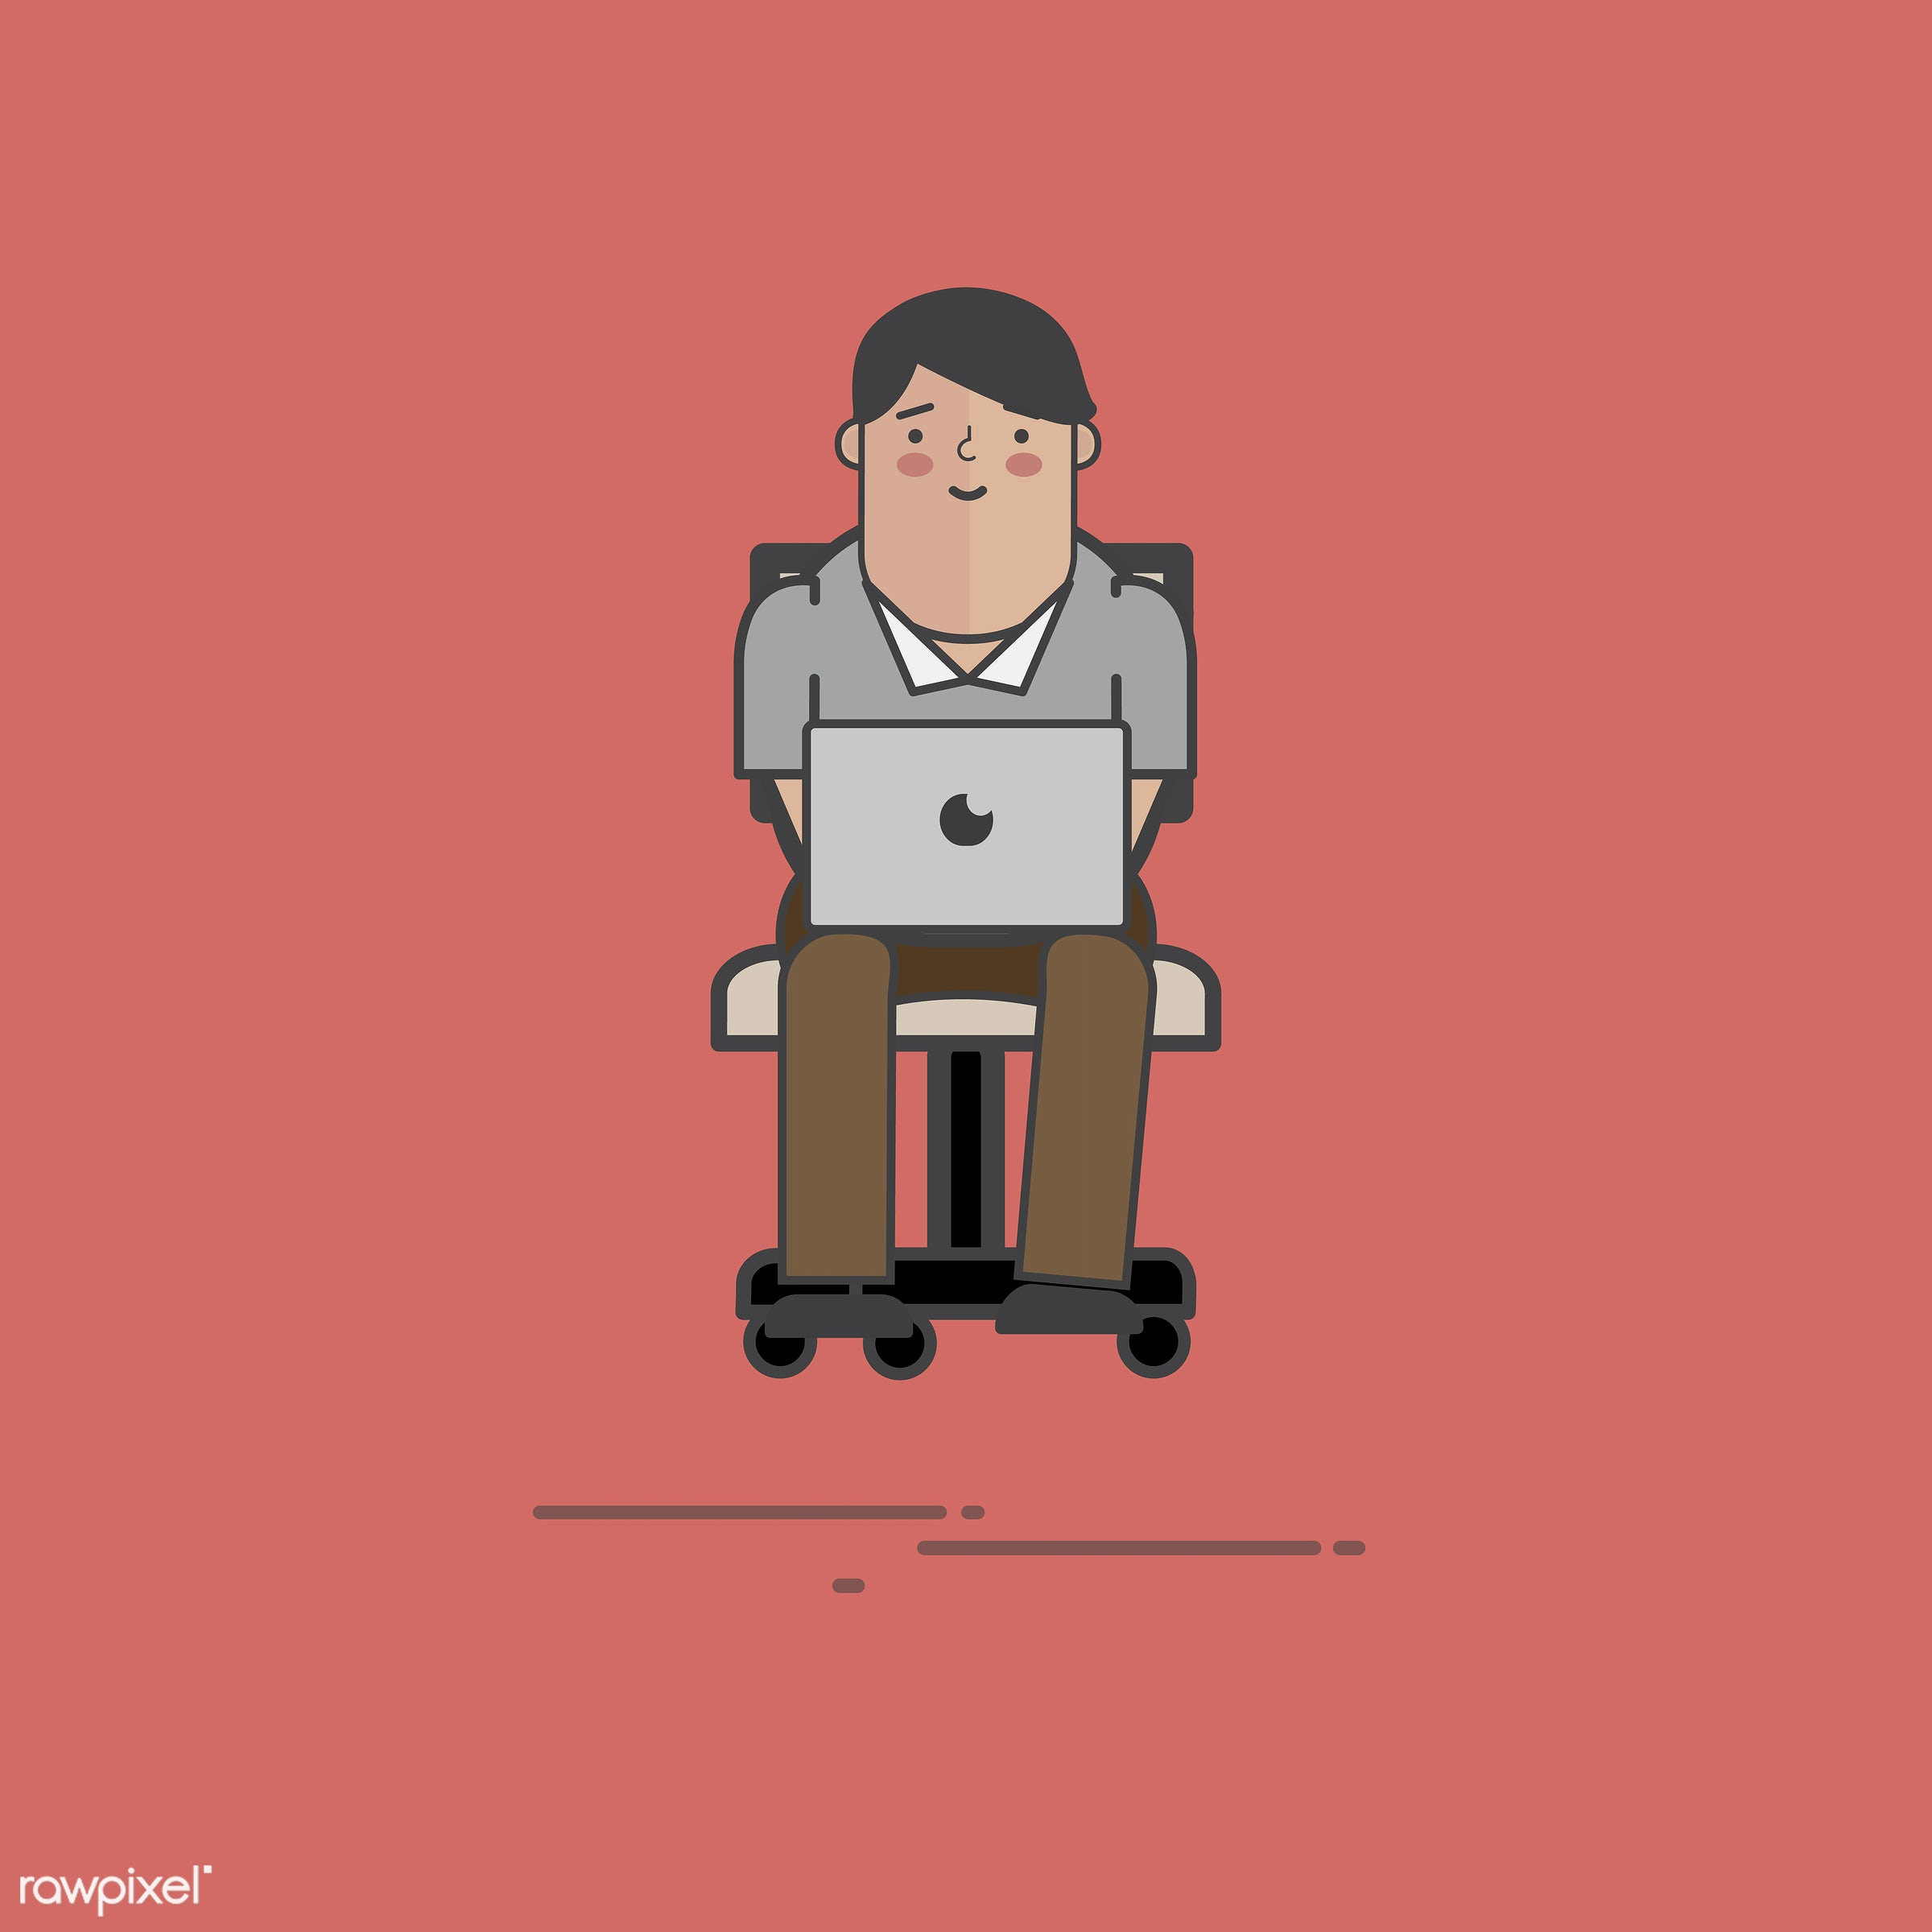 Illustration of people avatar - alone, cartoon, character, communication, computer, connection, design, drawing, graphic,...